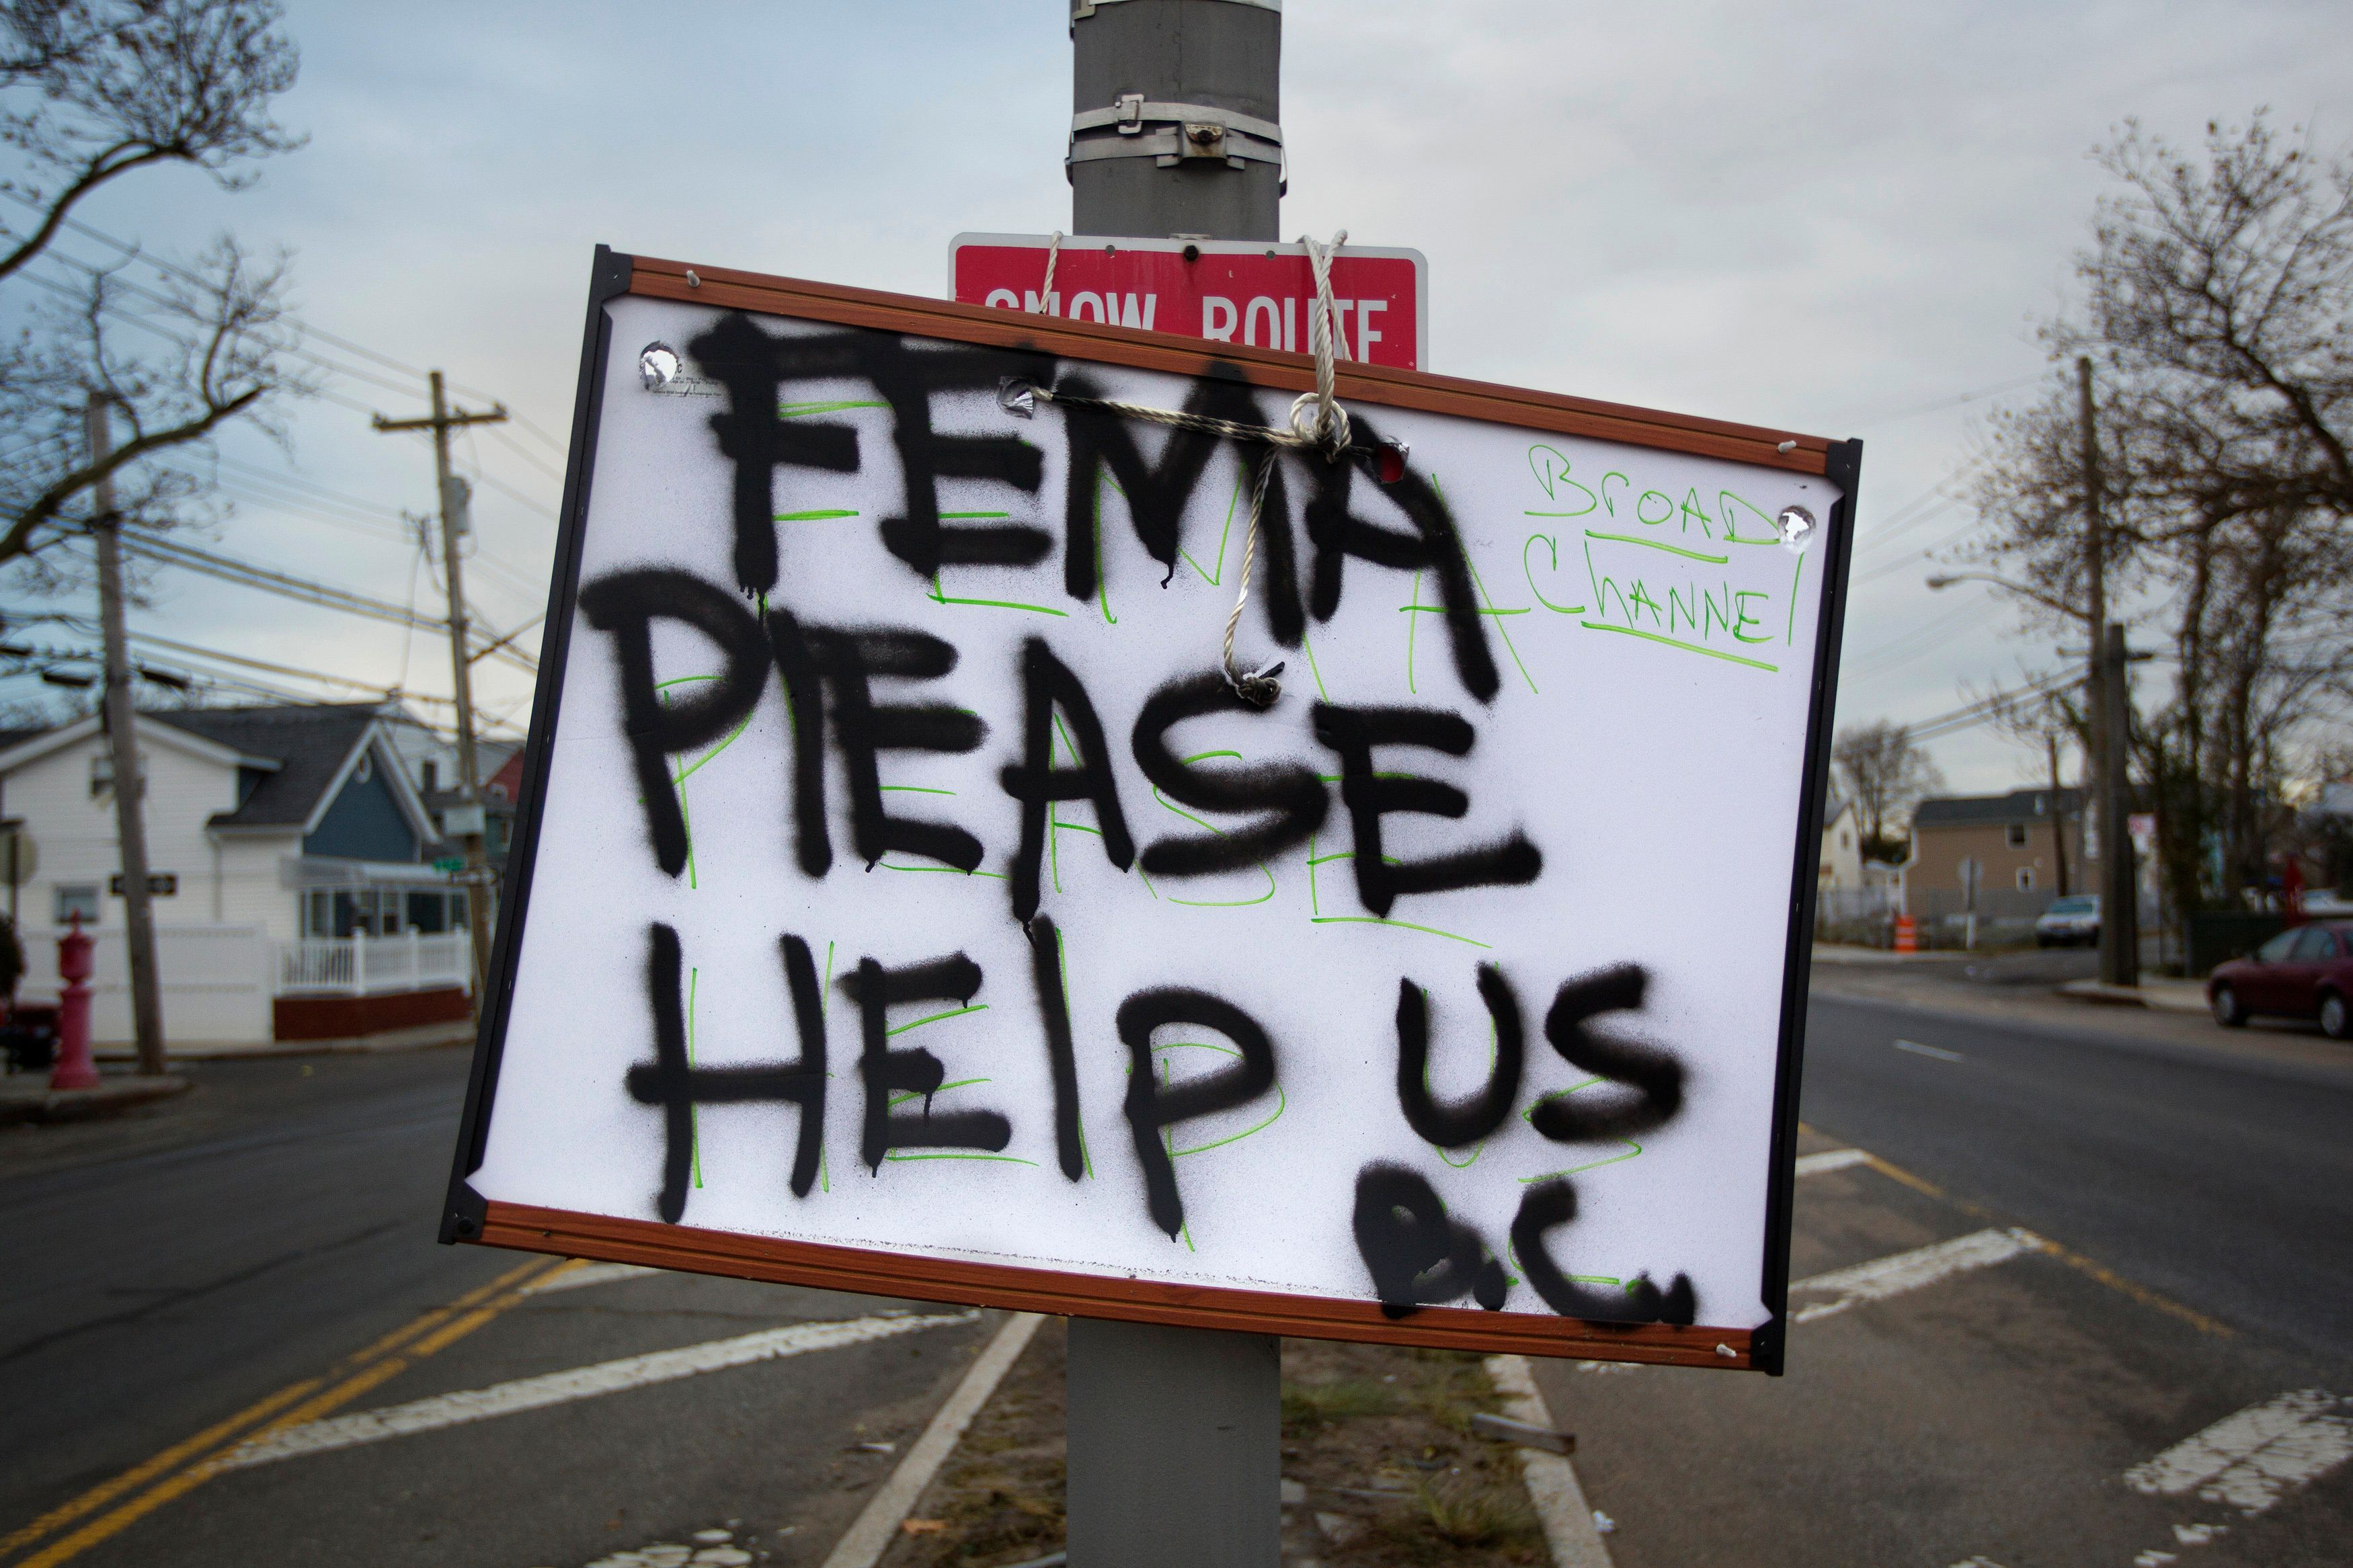 A sign asking for help from FEMA is seen in New York on Nov. 2, 2012, four days after superstorm Sandy smashed into the North